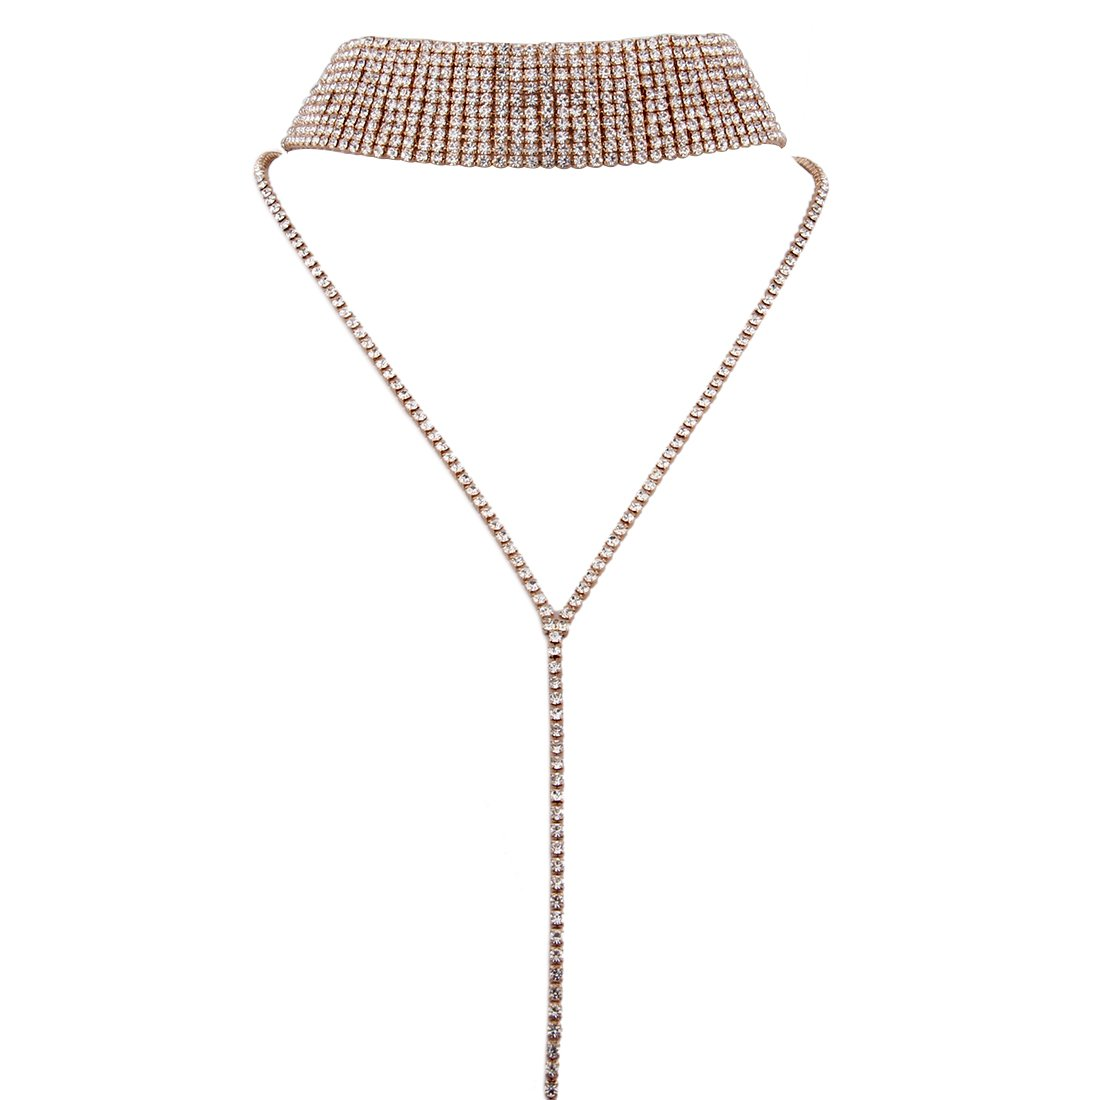 KUIYAI Bling Bling Wide Rhinestone Crystal Lariat Choker Necklace with Long Chain Pendant for Women Girls KY-4rowsG